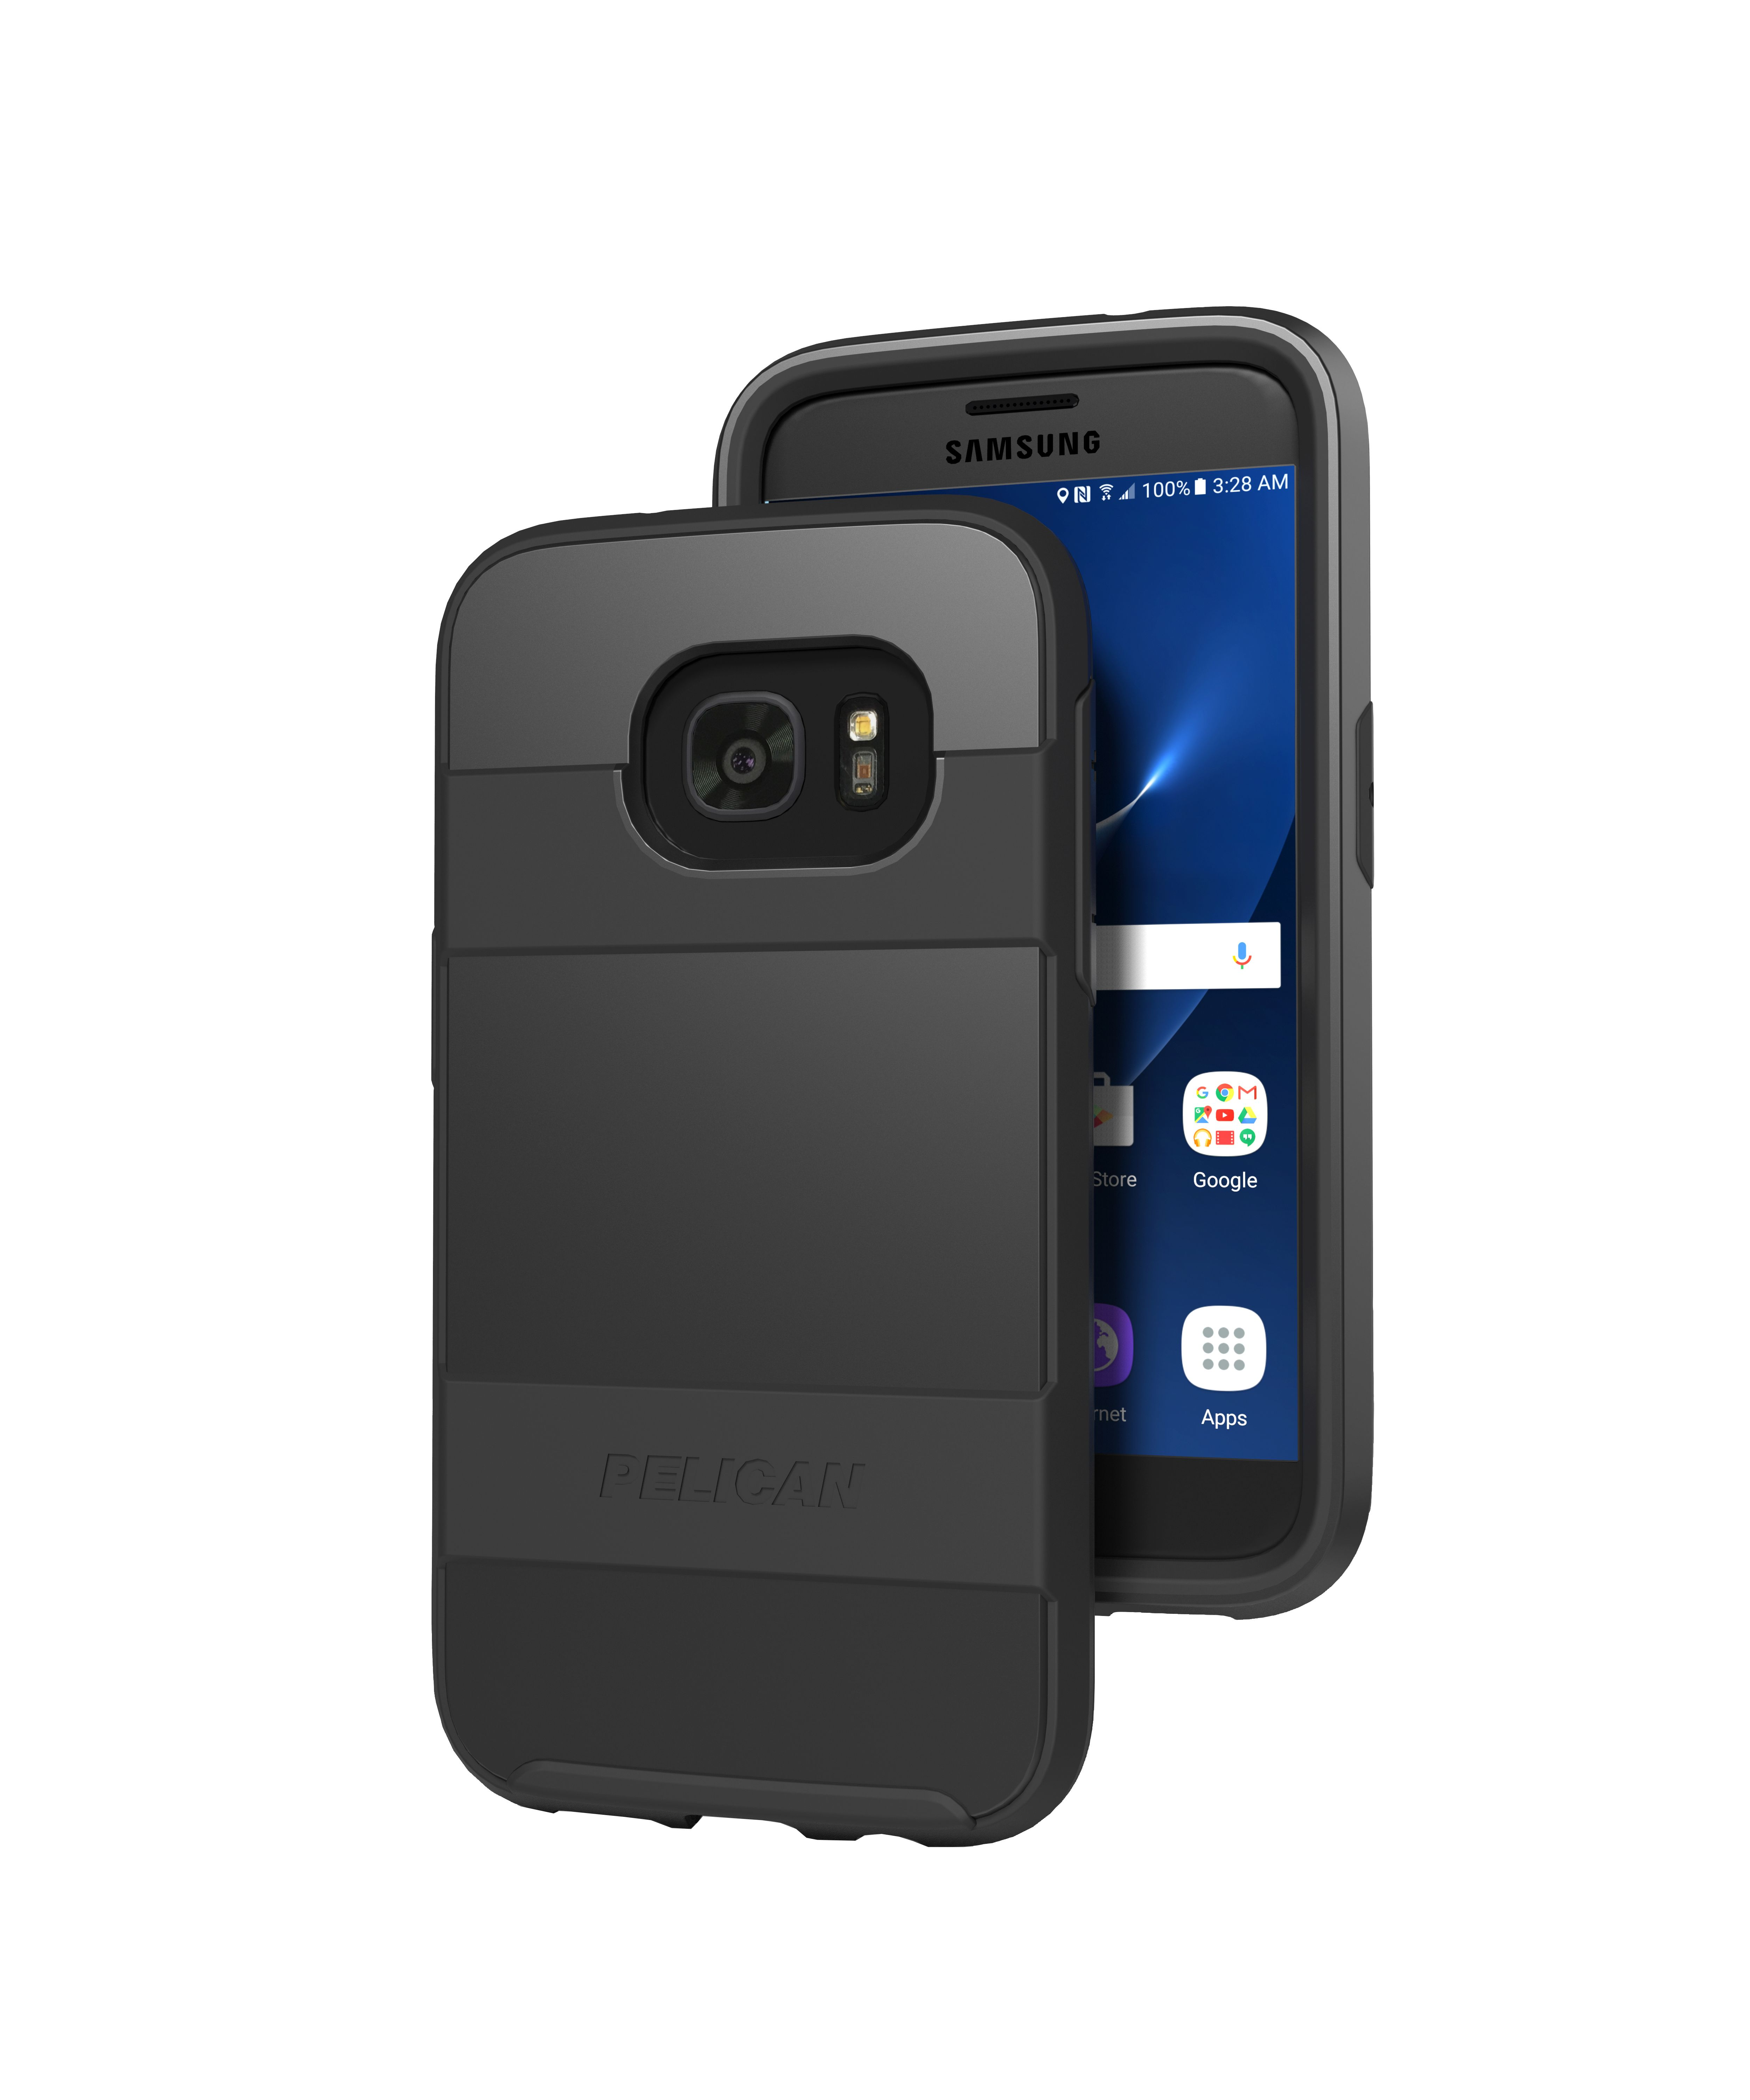 Smartphone Cases Pelican Announces Smartphone Cases For Samsung Galaxy S7 And